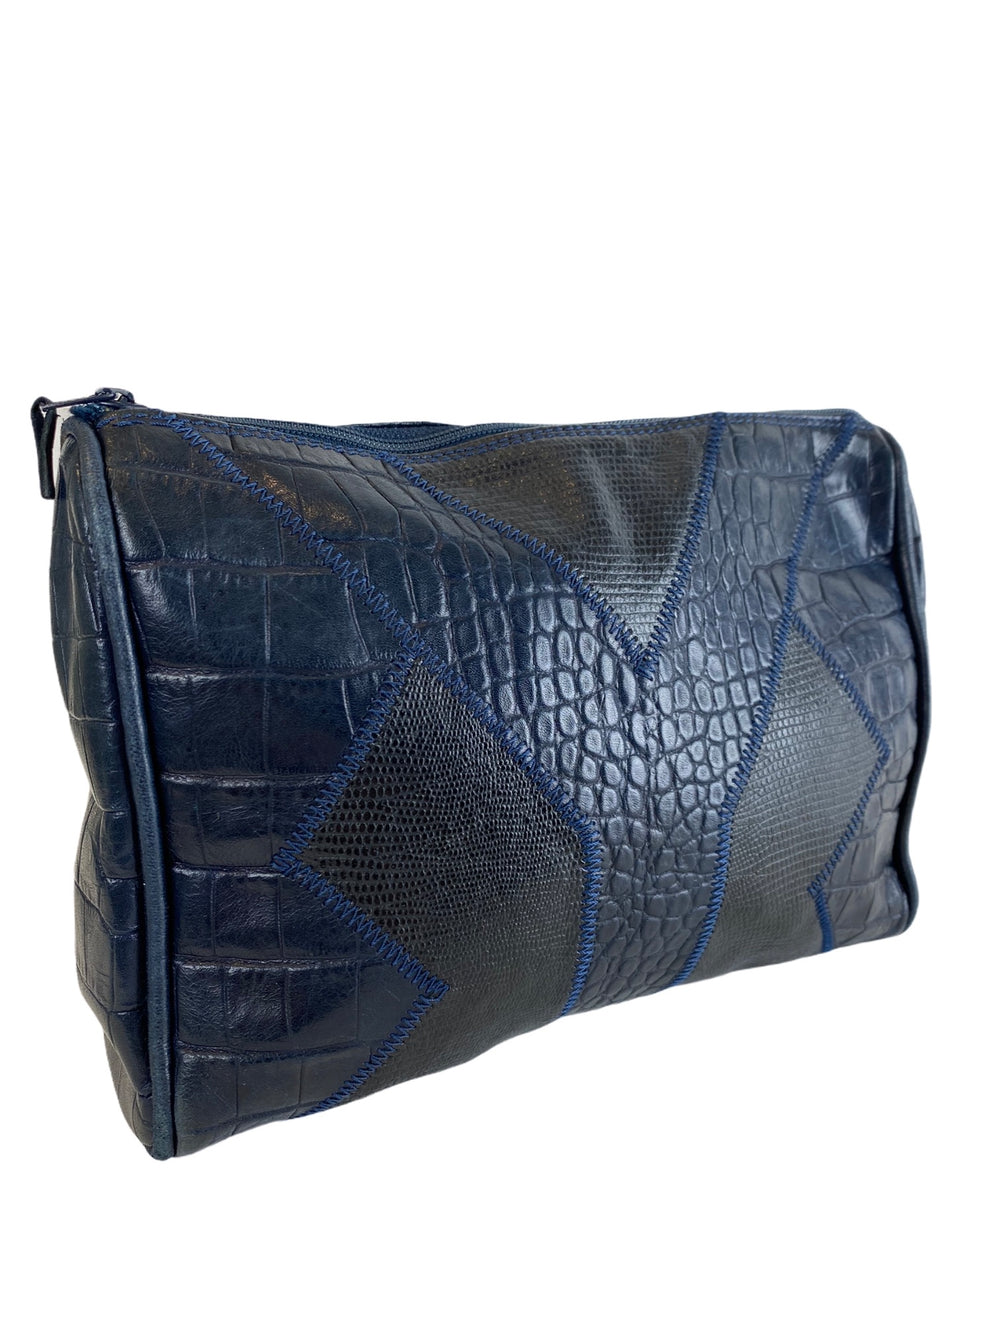 Yves Saint Laurent Blue Croc Effect Clutch - As Seen on Instagram 21/10/2020